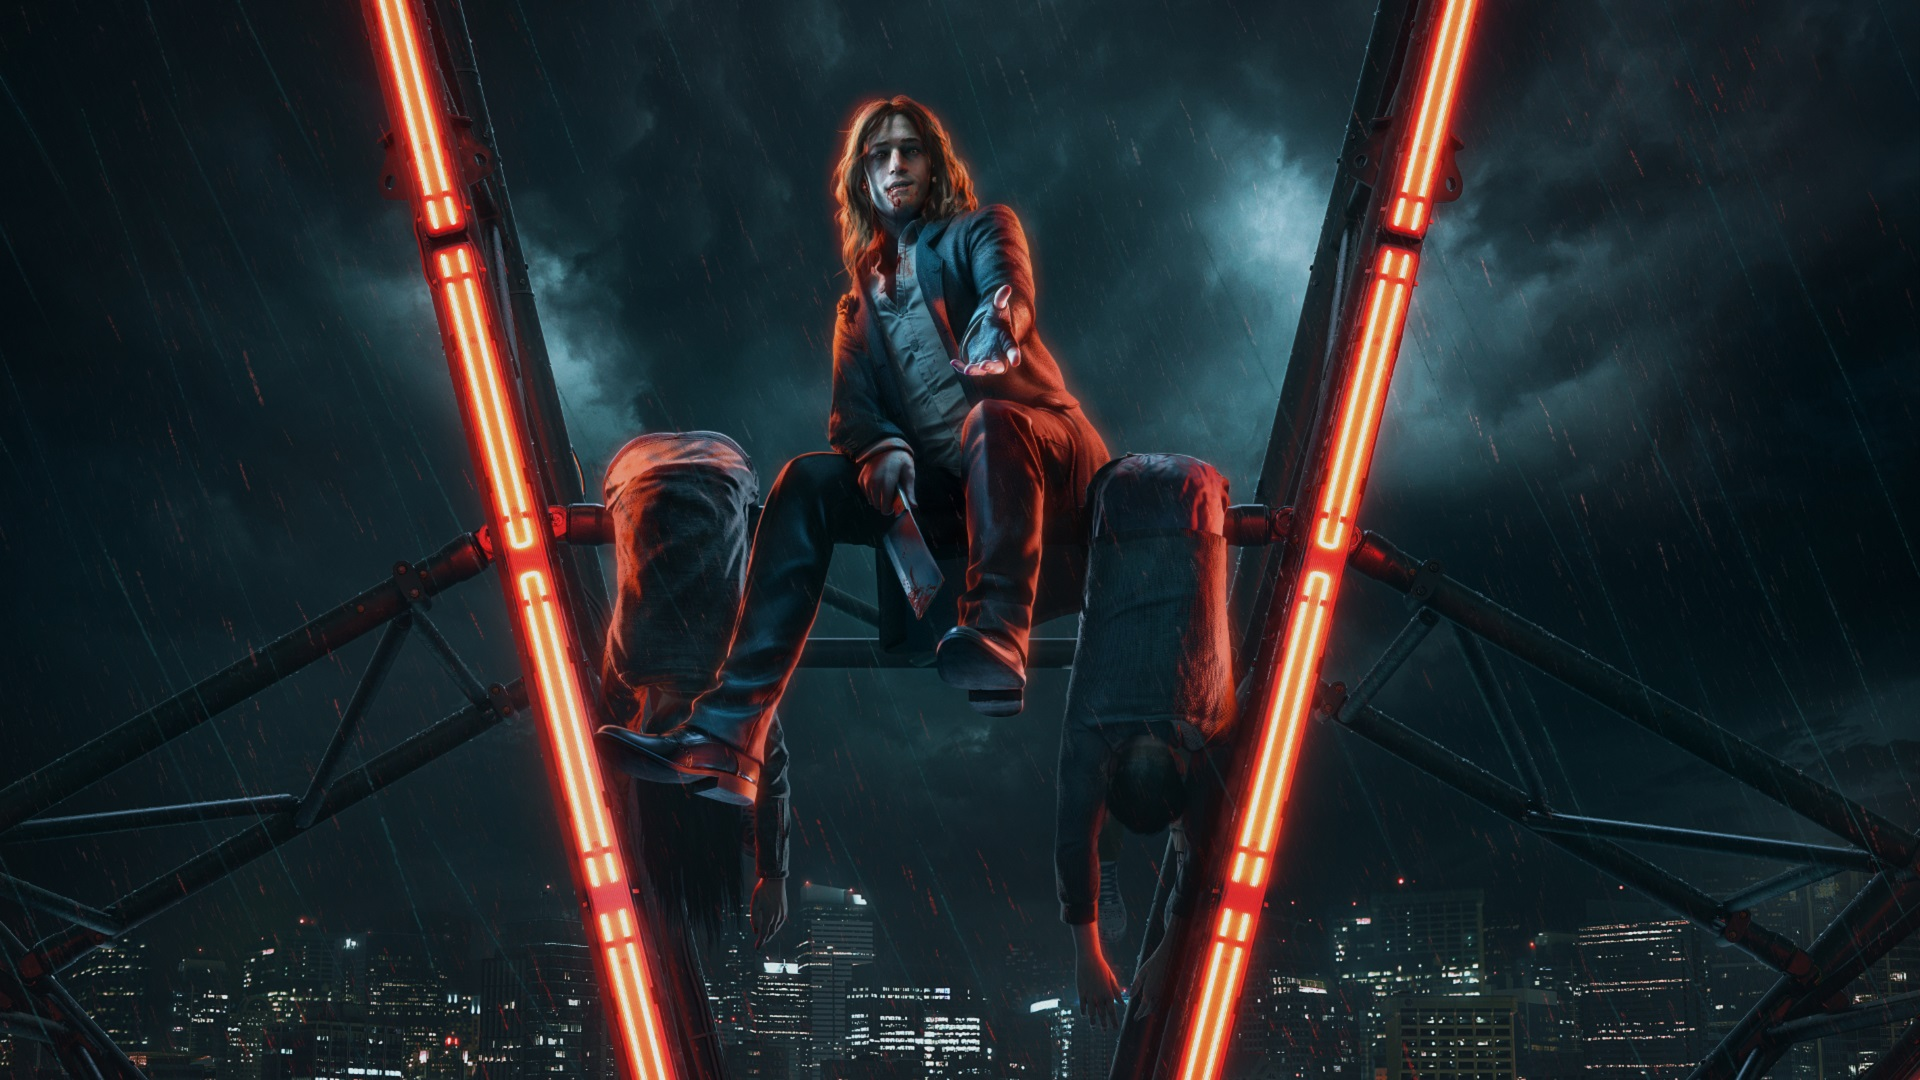 Photo of E3 2019 – Vampire: The Masquerade Bloodlines 2 – gameplay!